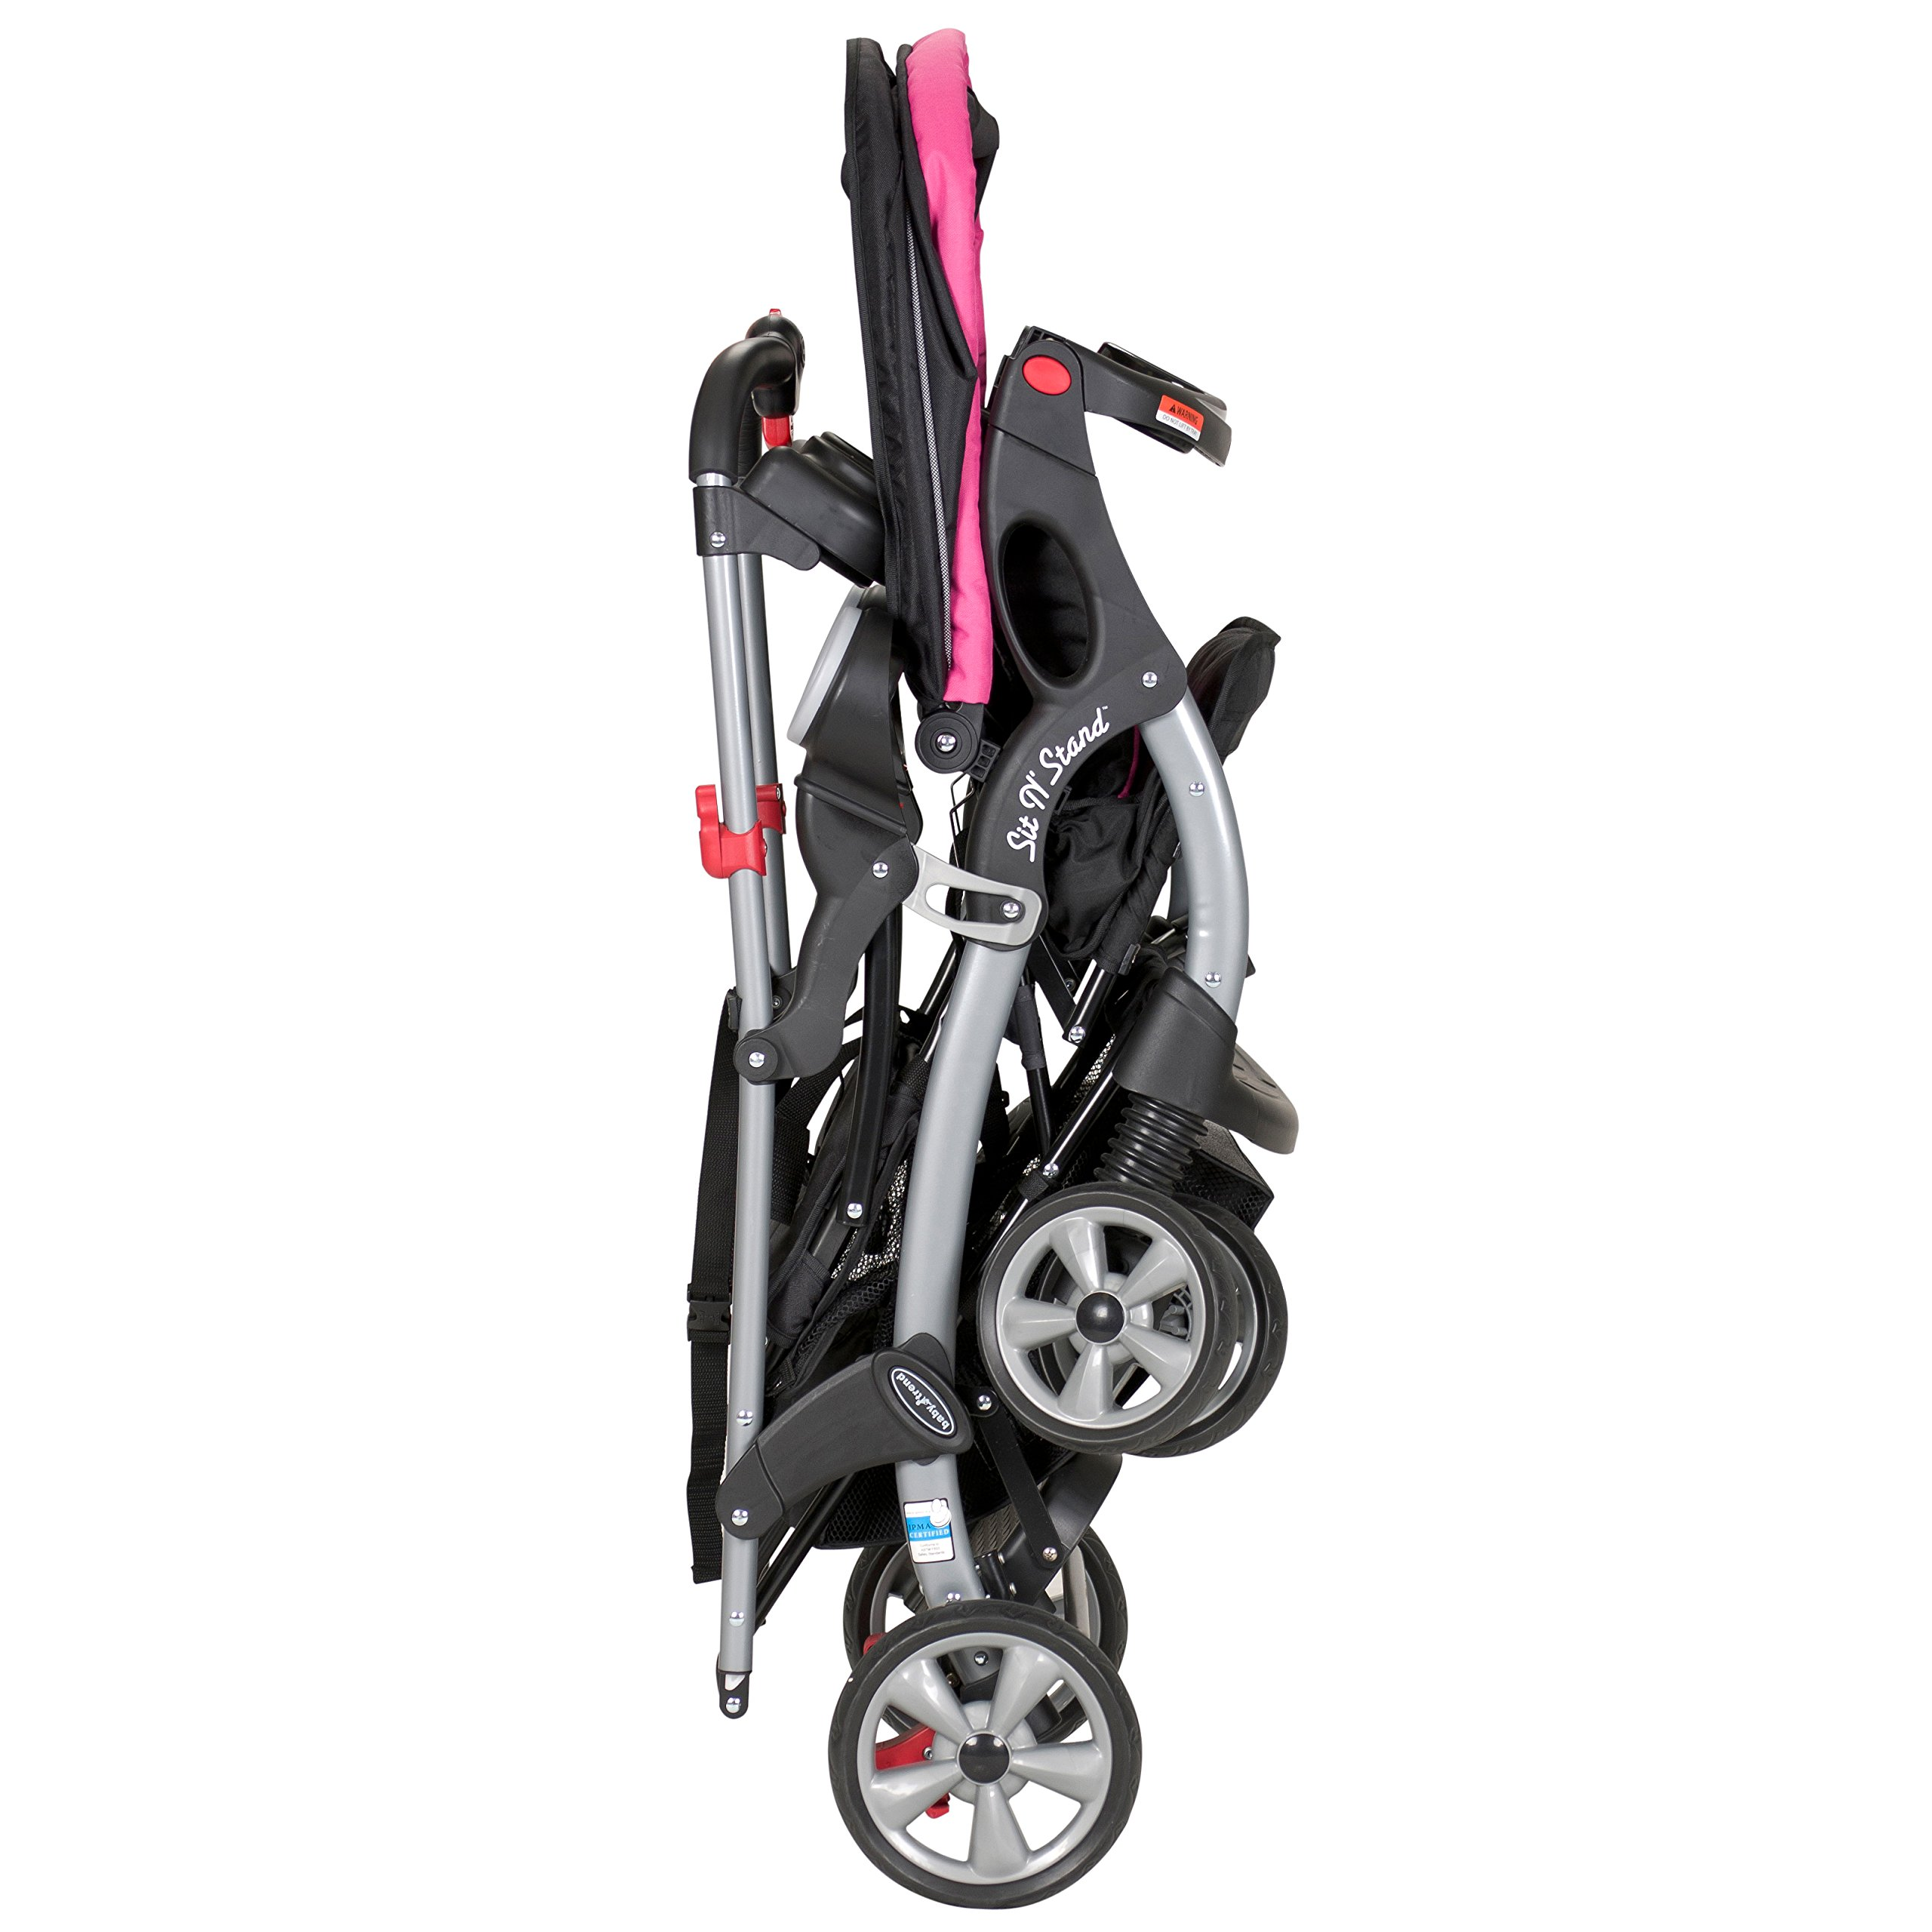 Baby Trend Sit n Stand Ultra Stroller, Bubble Gum by Baby Trend (Image #5)